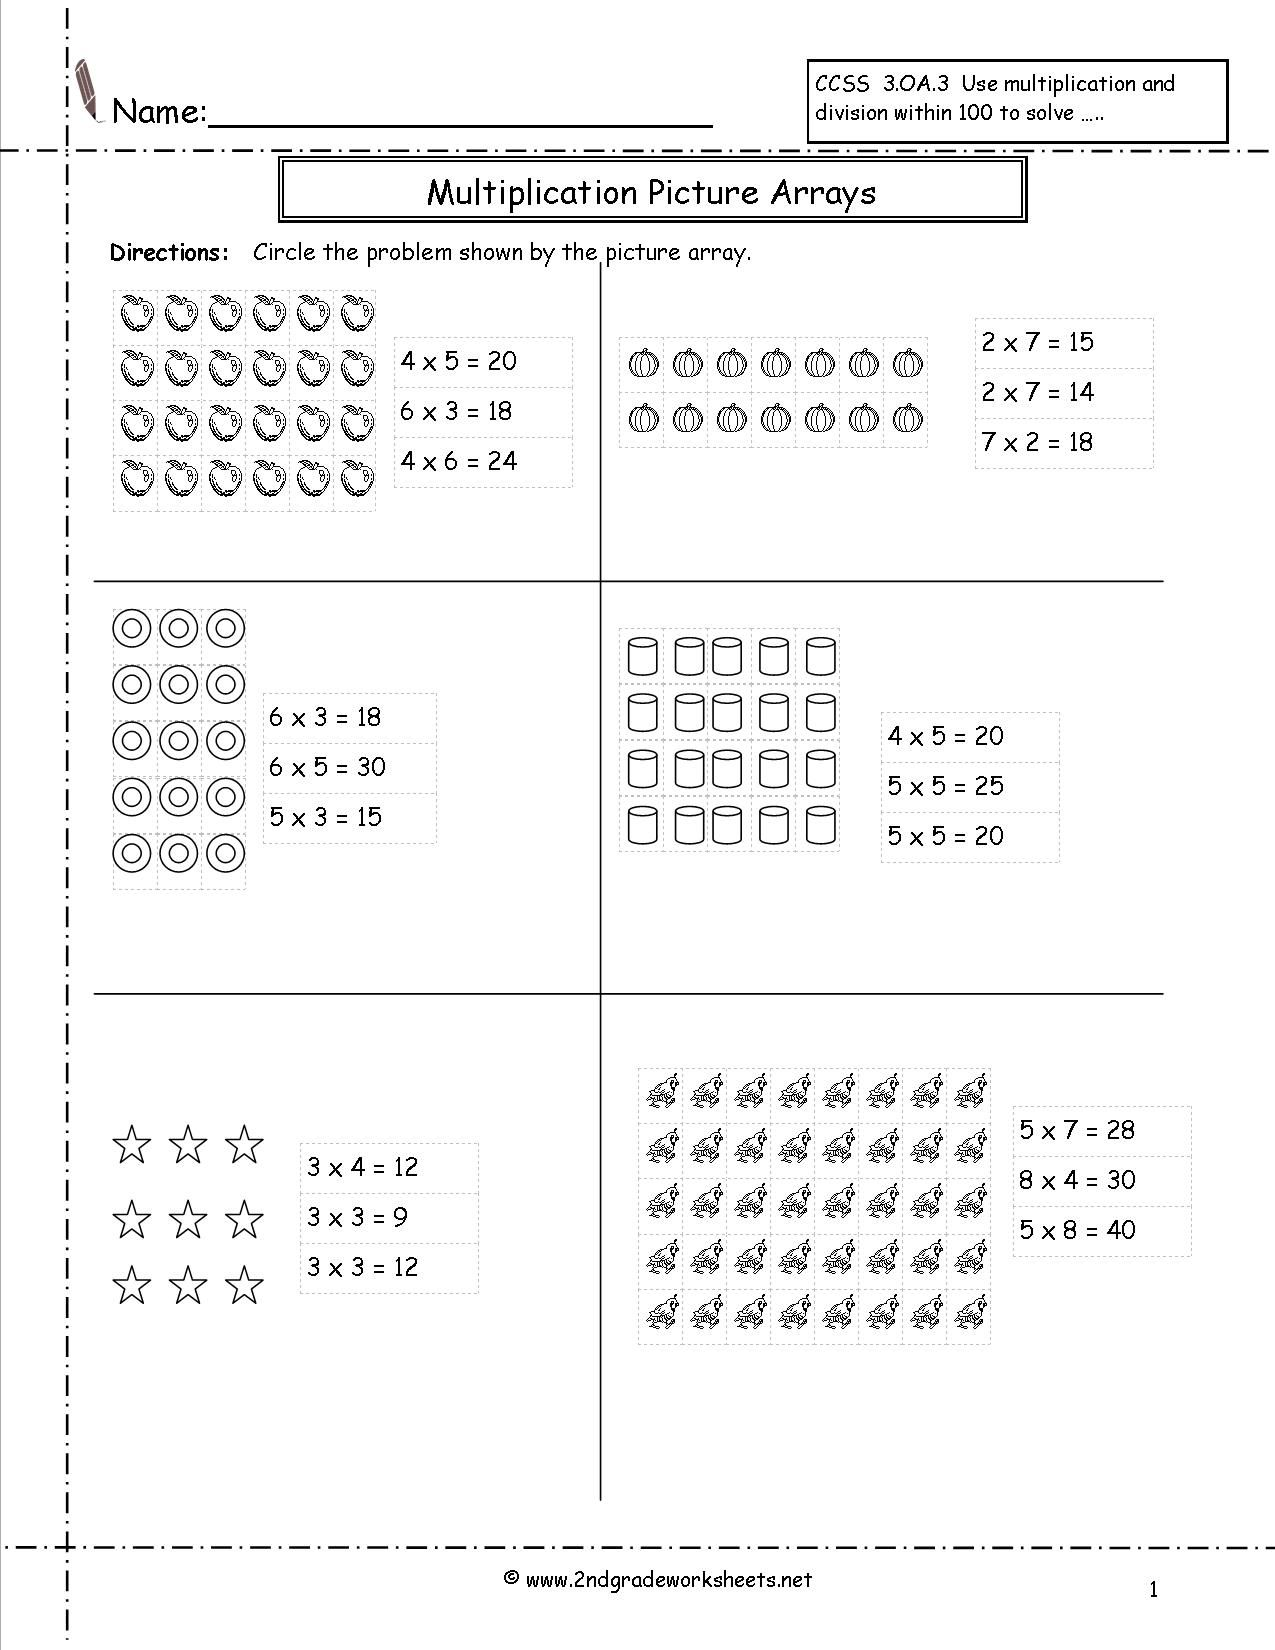 Draw Groups Multiplication Worksheets